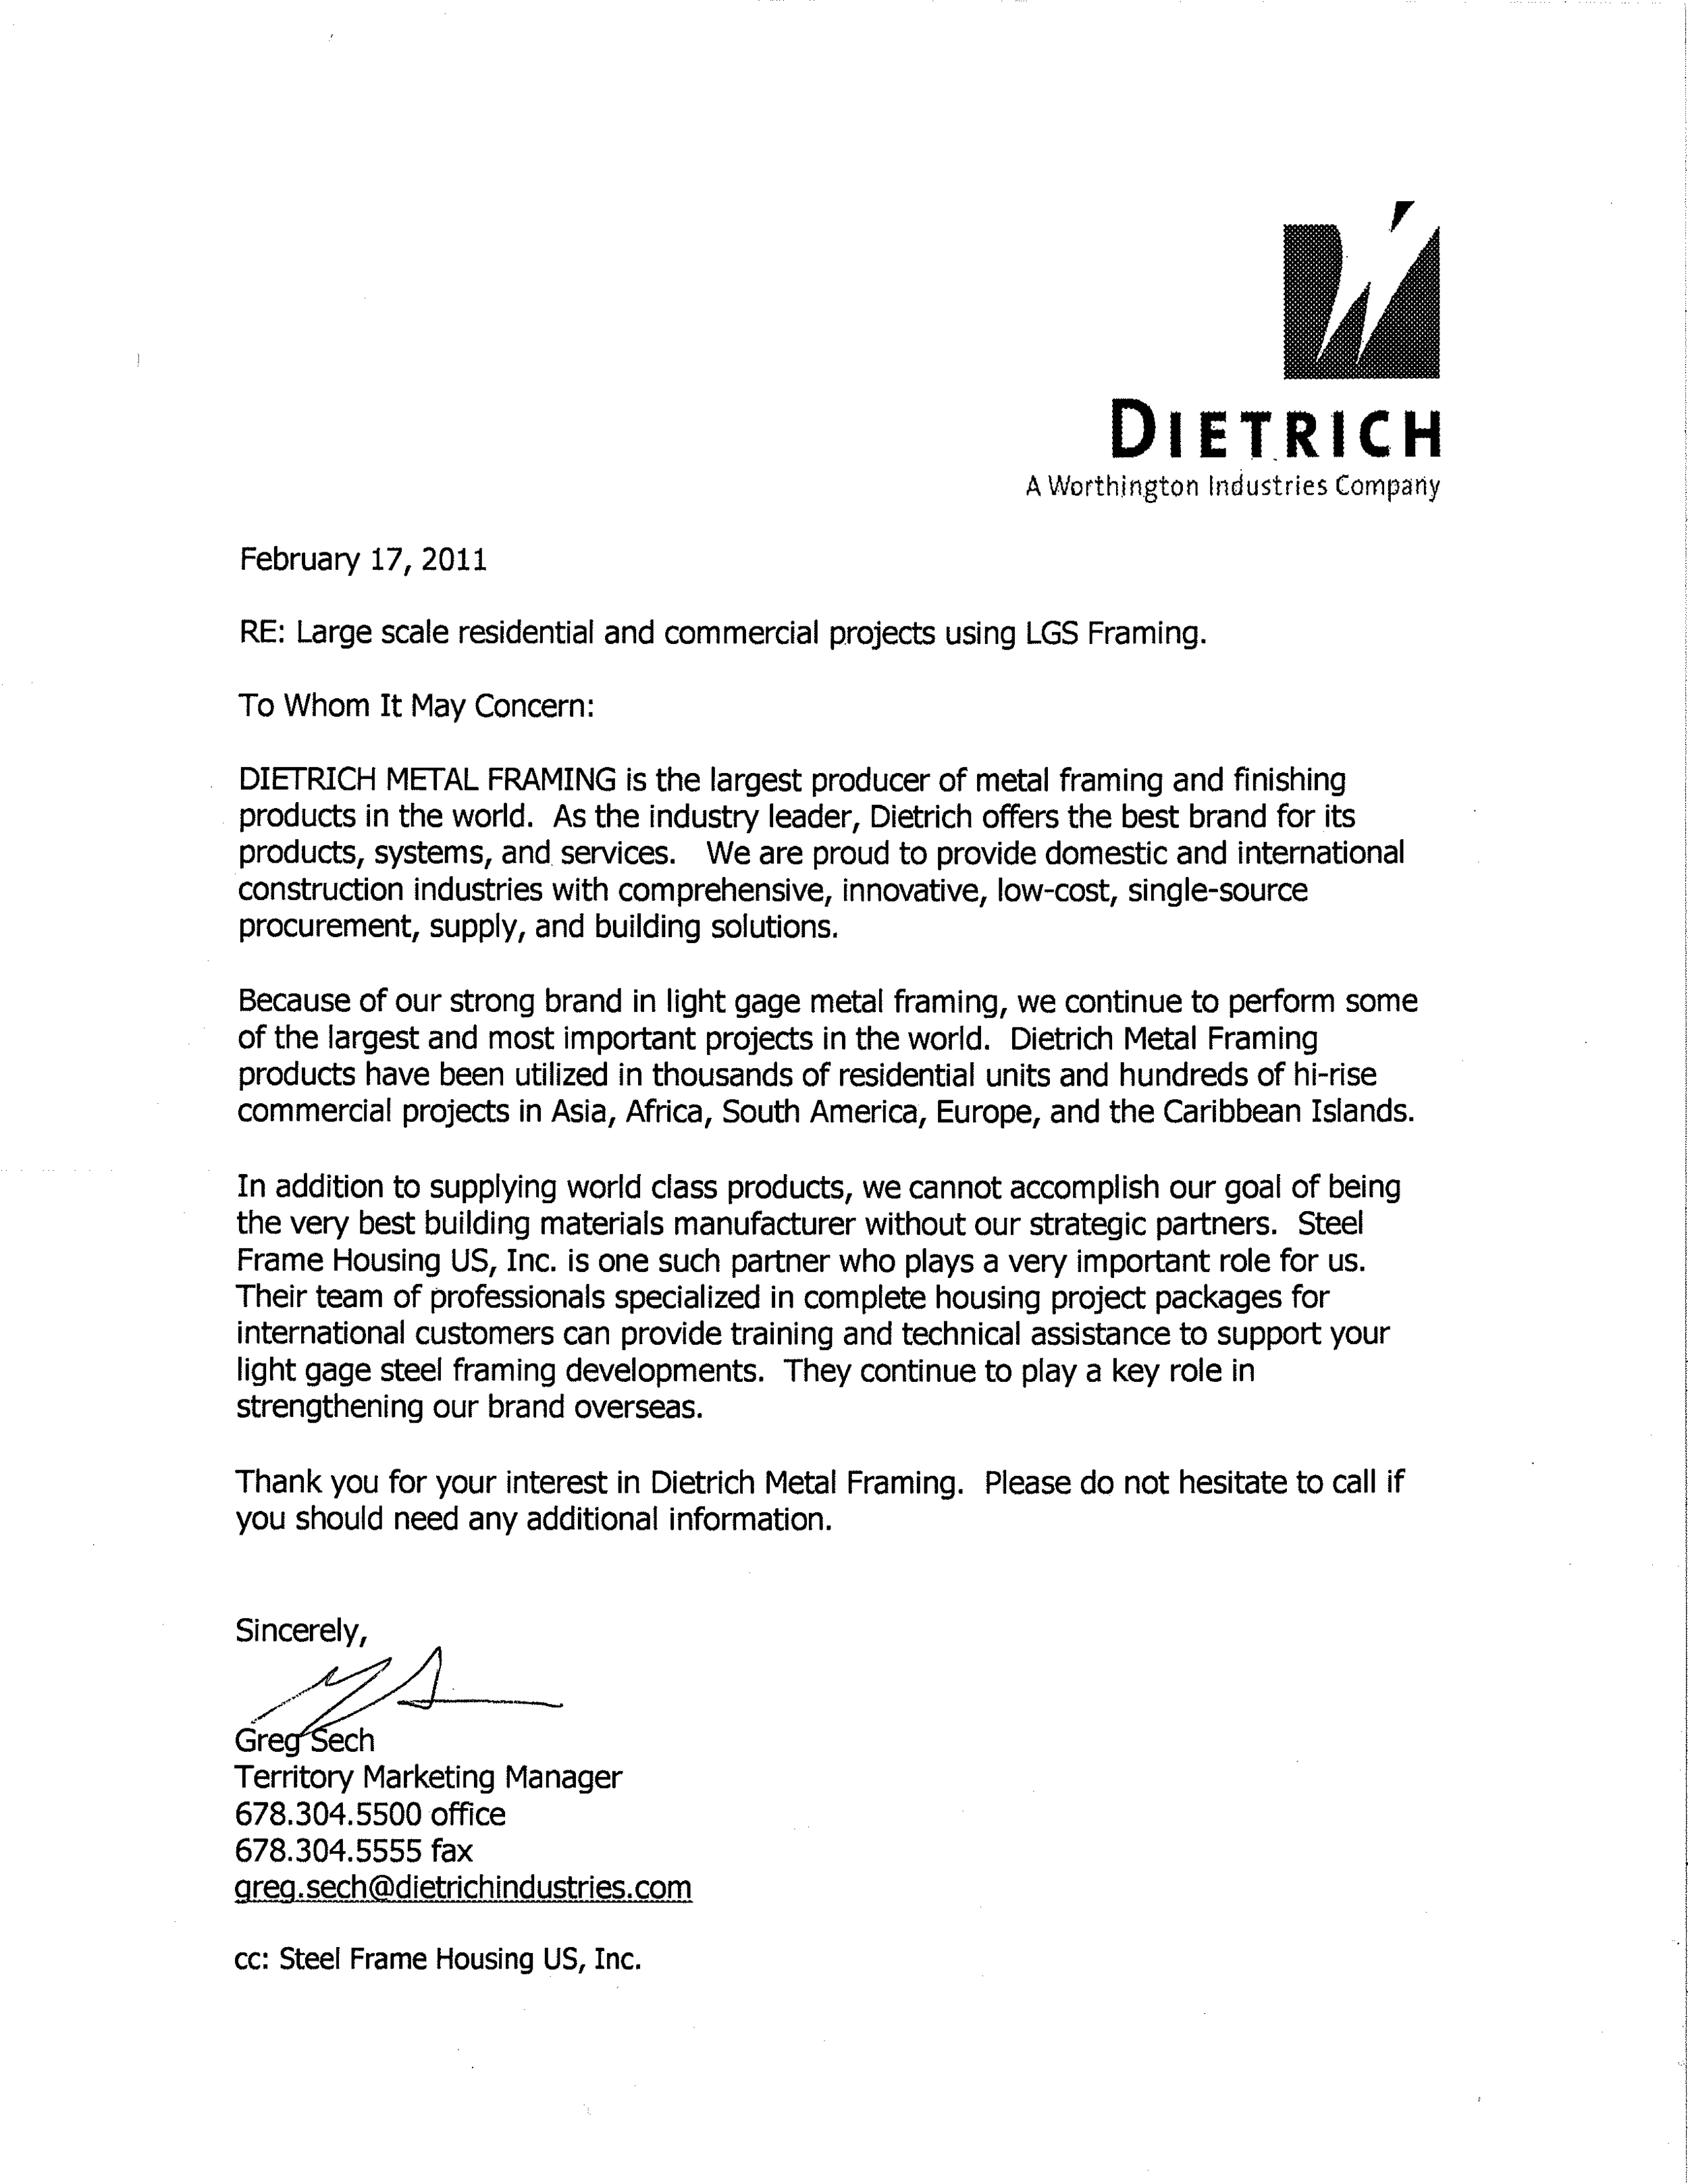 DIETRICH LETTER BY TERRITORY MARKETING DIV..png